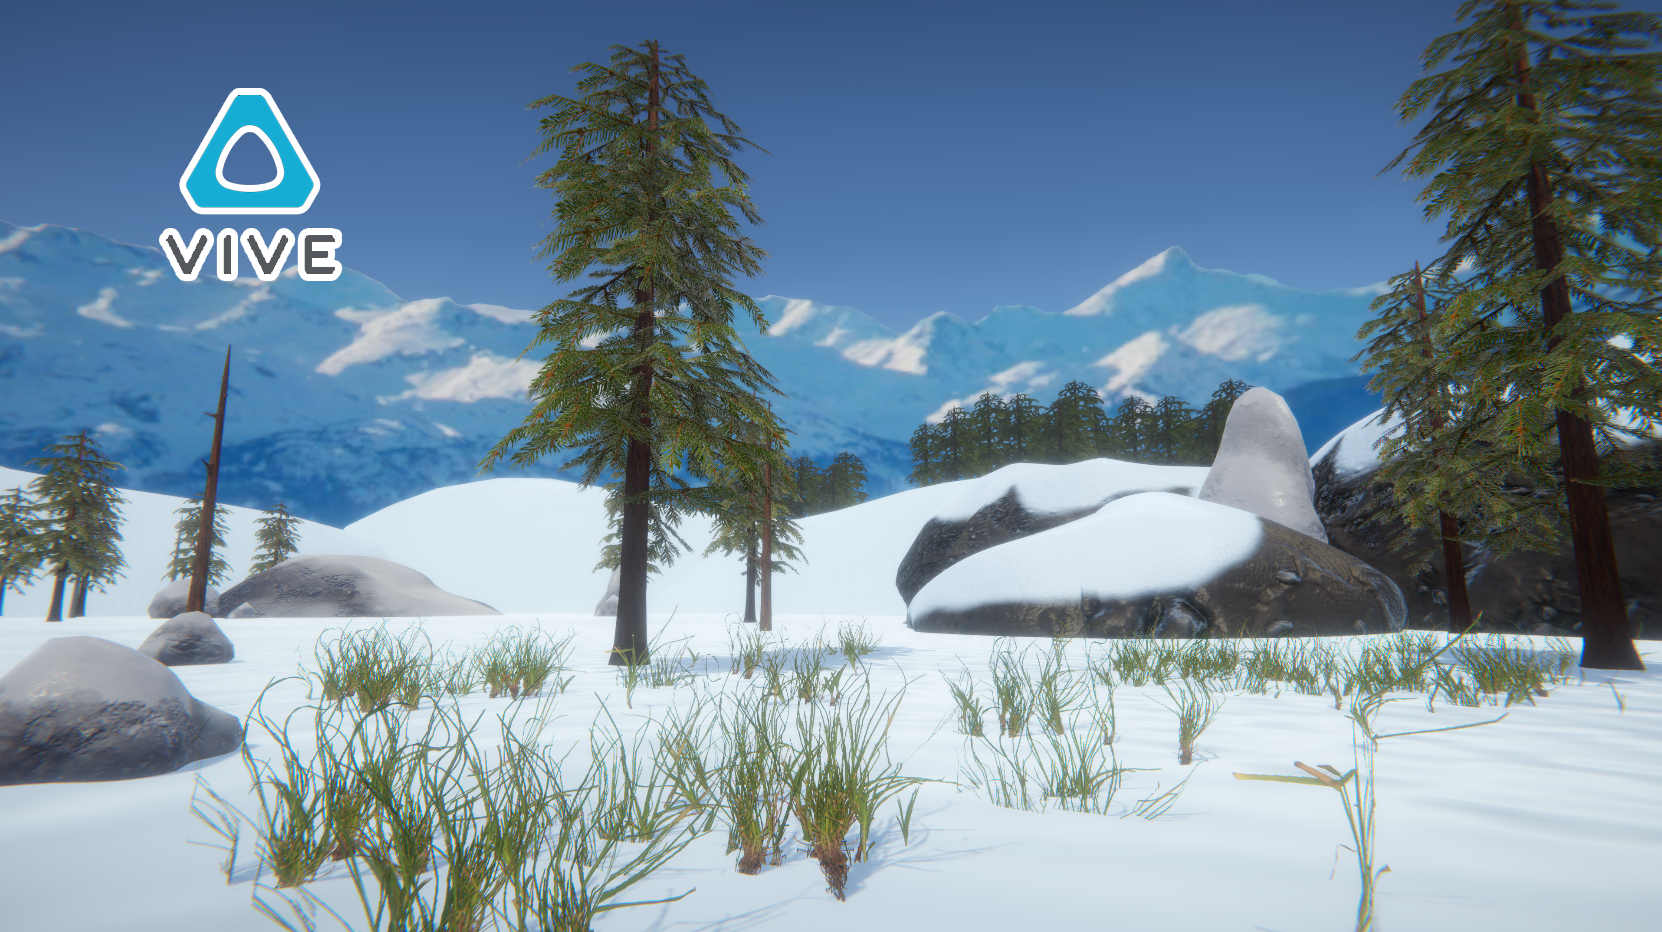 Snowboarding VR Project :: Snowboarding game in development for the HTC Vive - Responsible for all Visuals